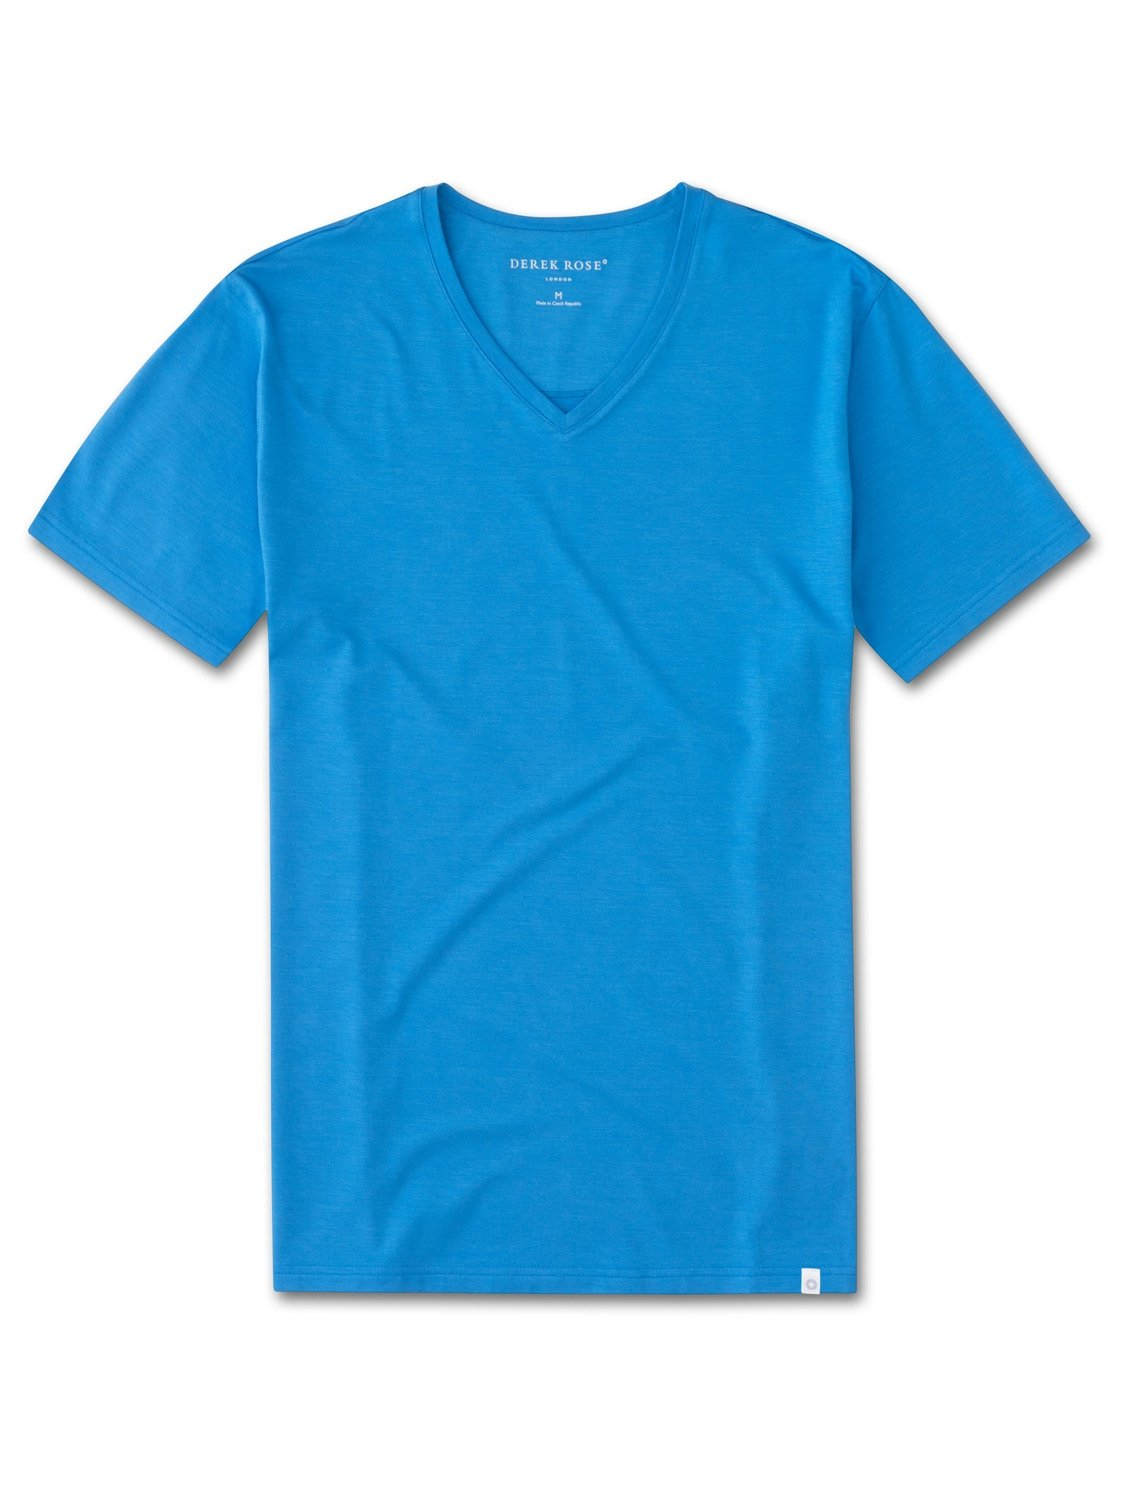 Men's Short Sleeve V-Neck T-Shirt Basel 4 Micro Modal Stretch Blue